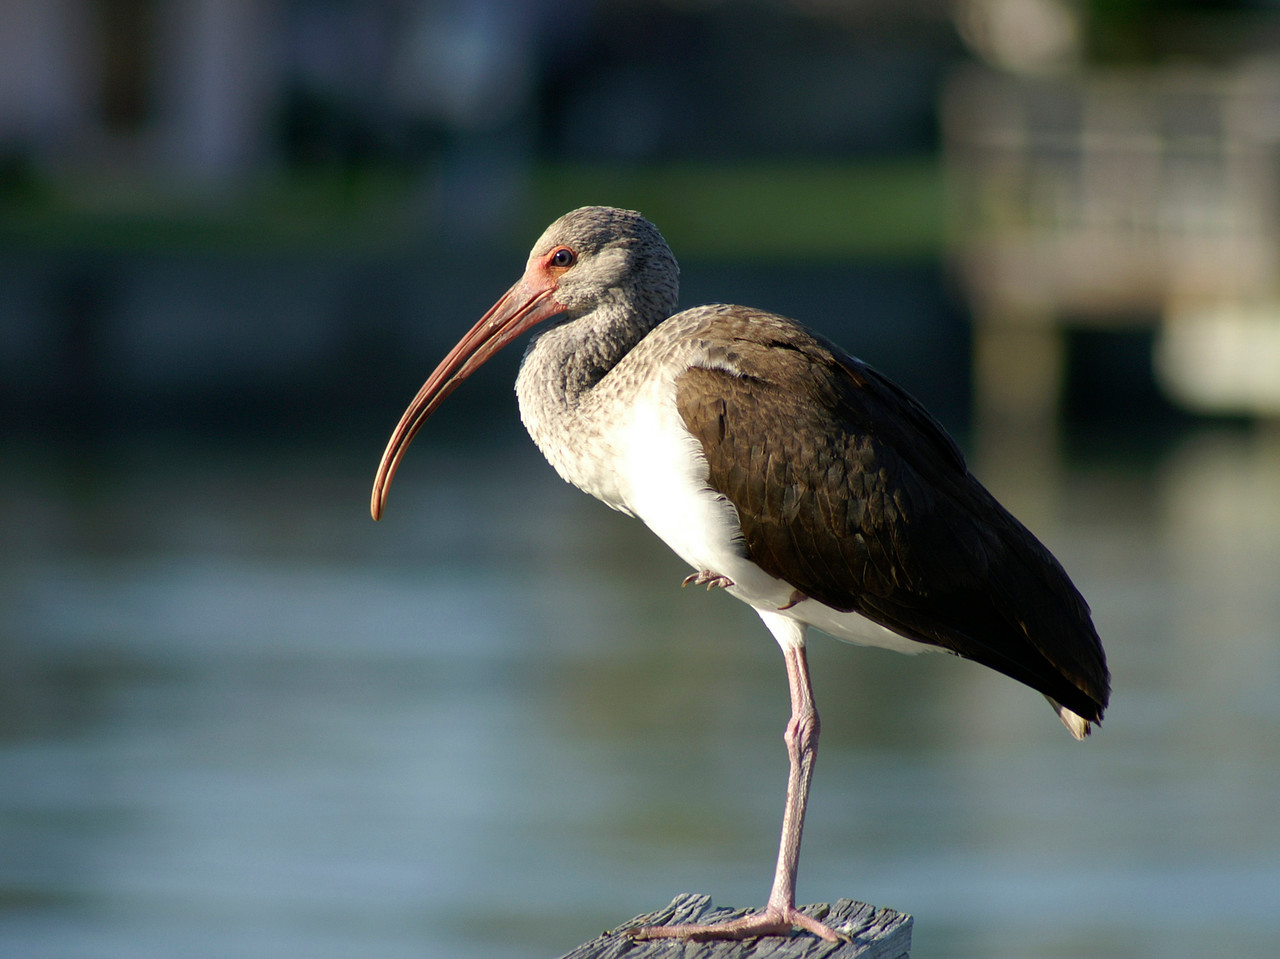 Ibis, Reddington Beach, Florida